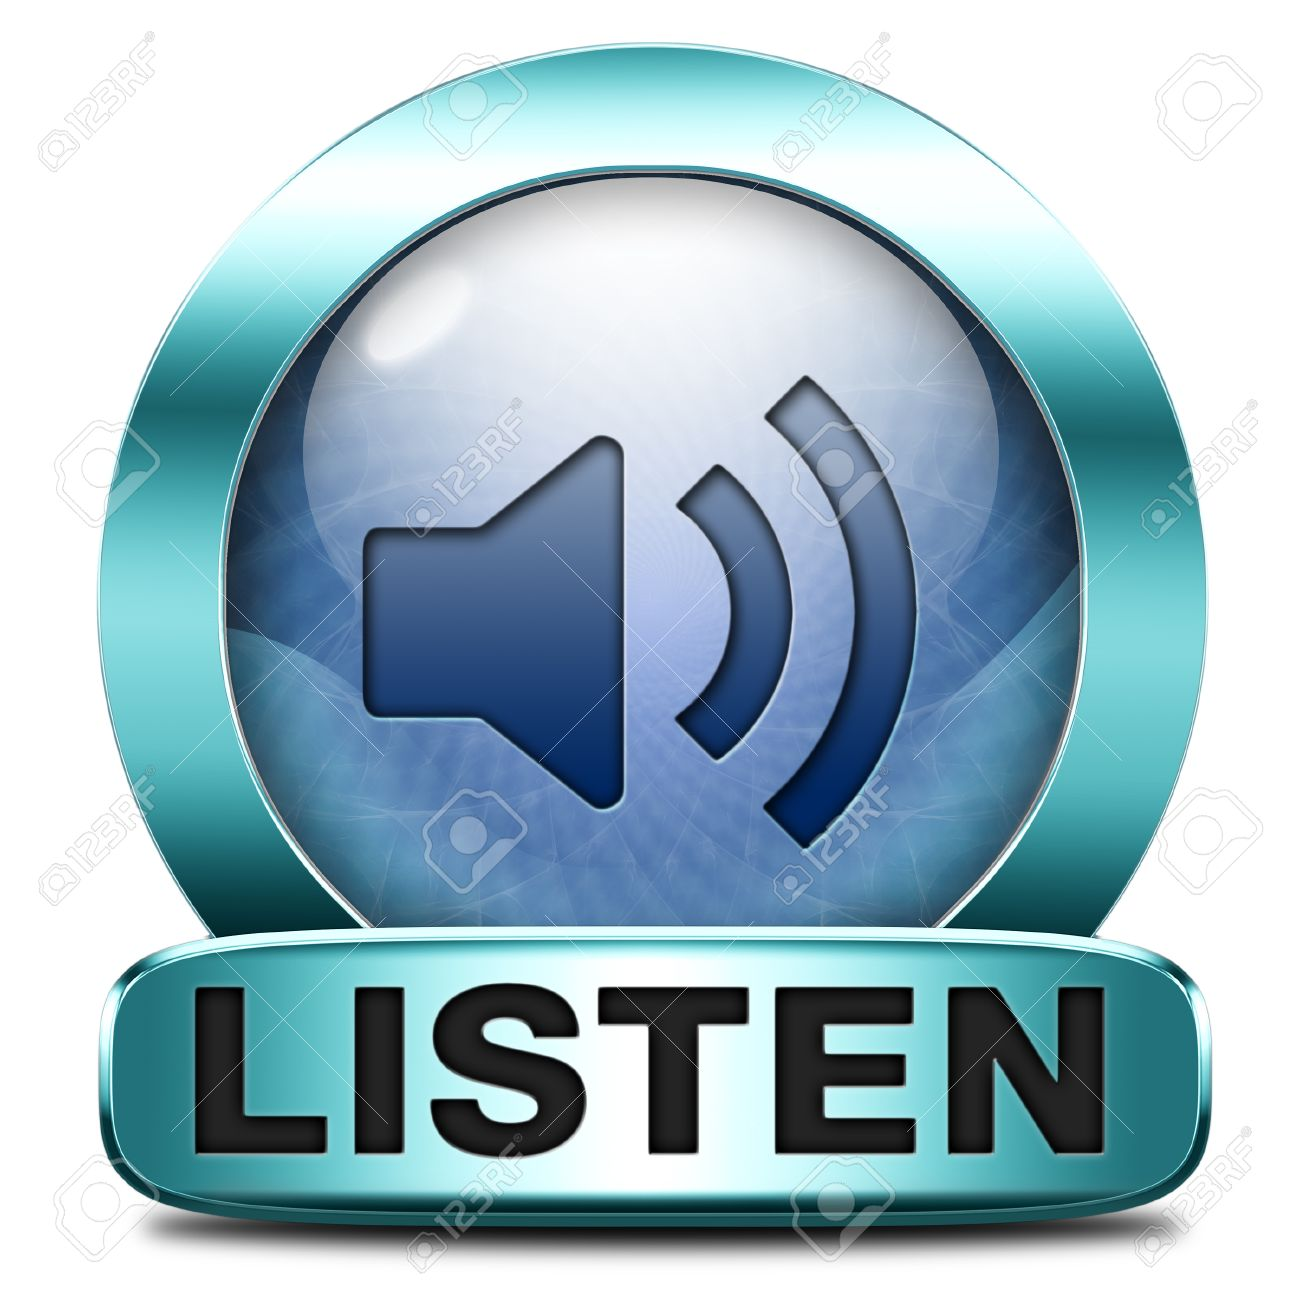 Listen live stream music song audio or radio button or icon